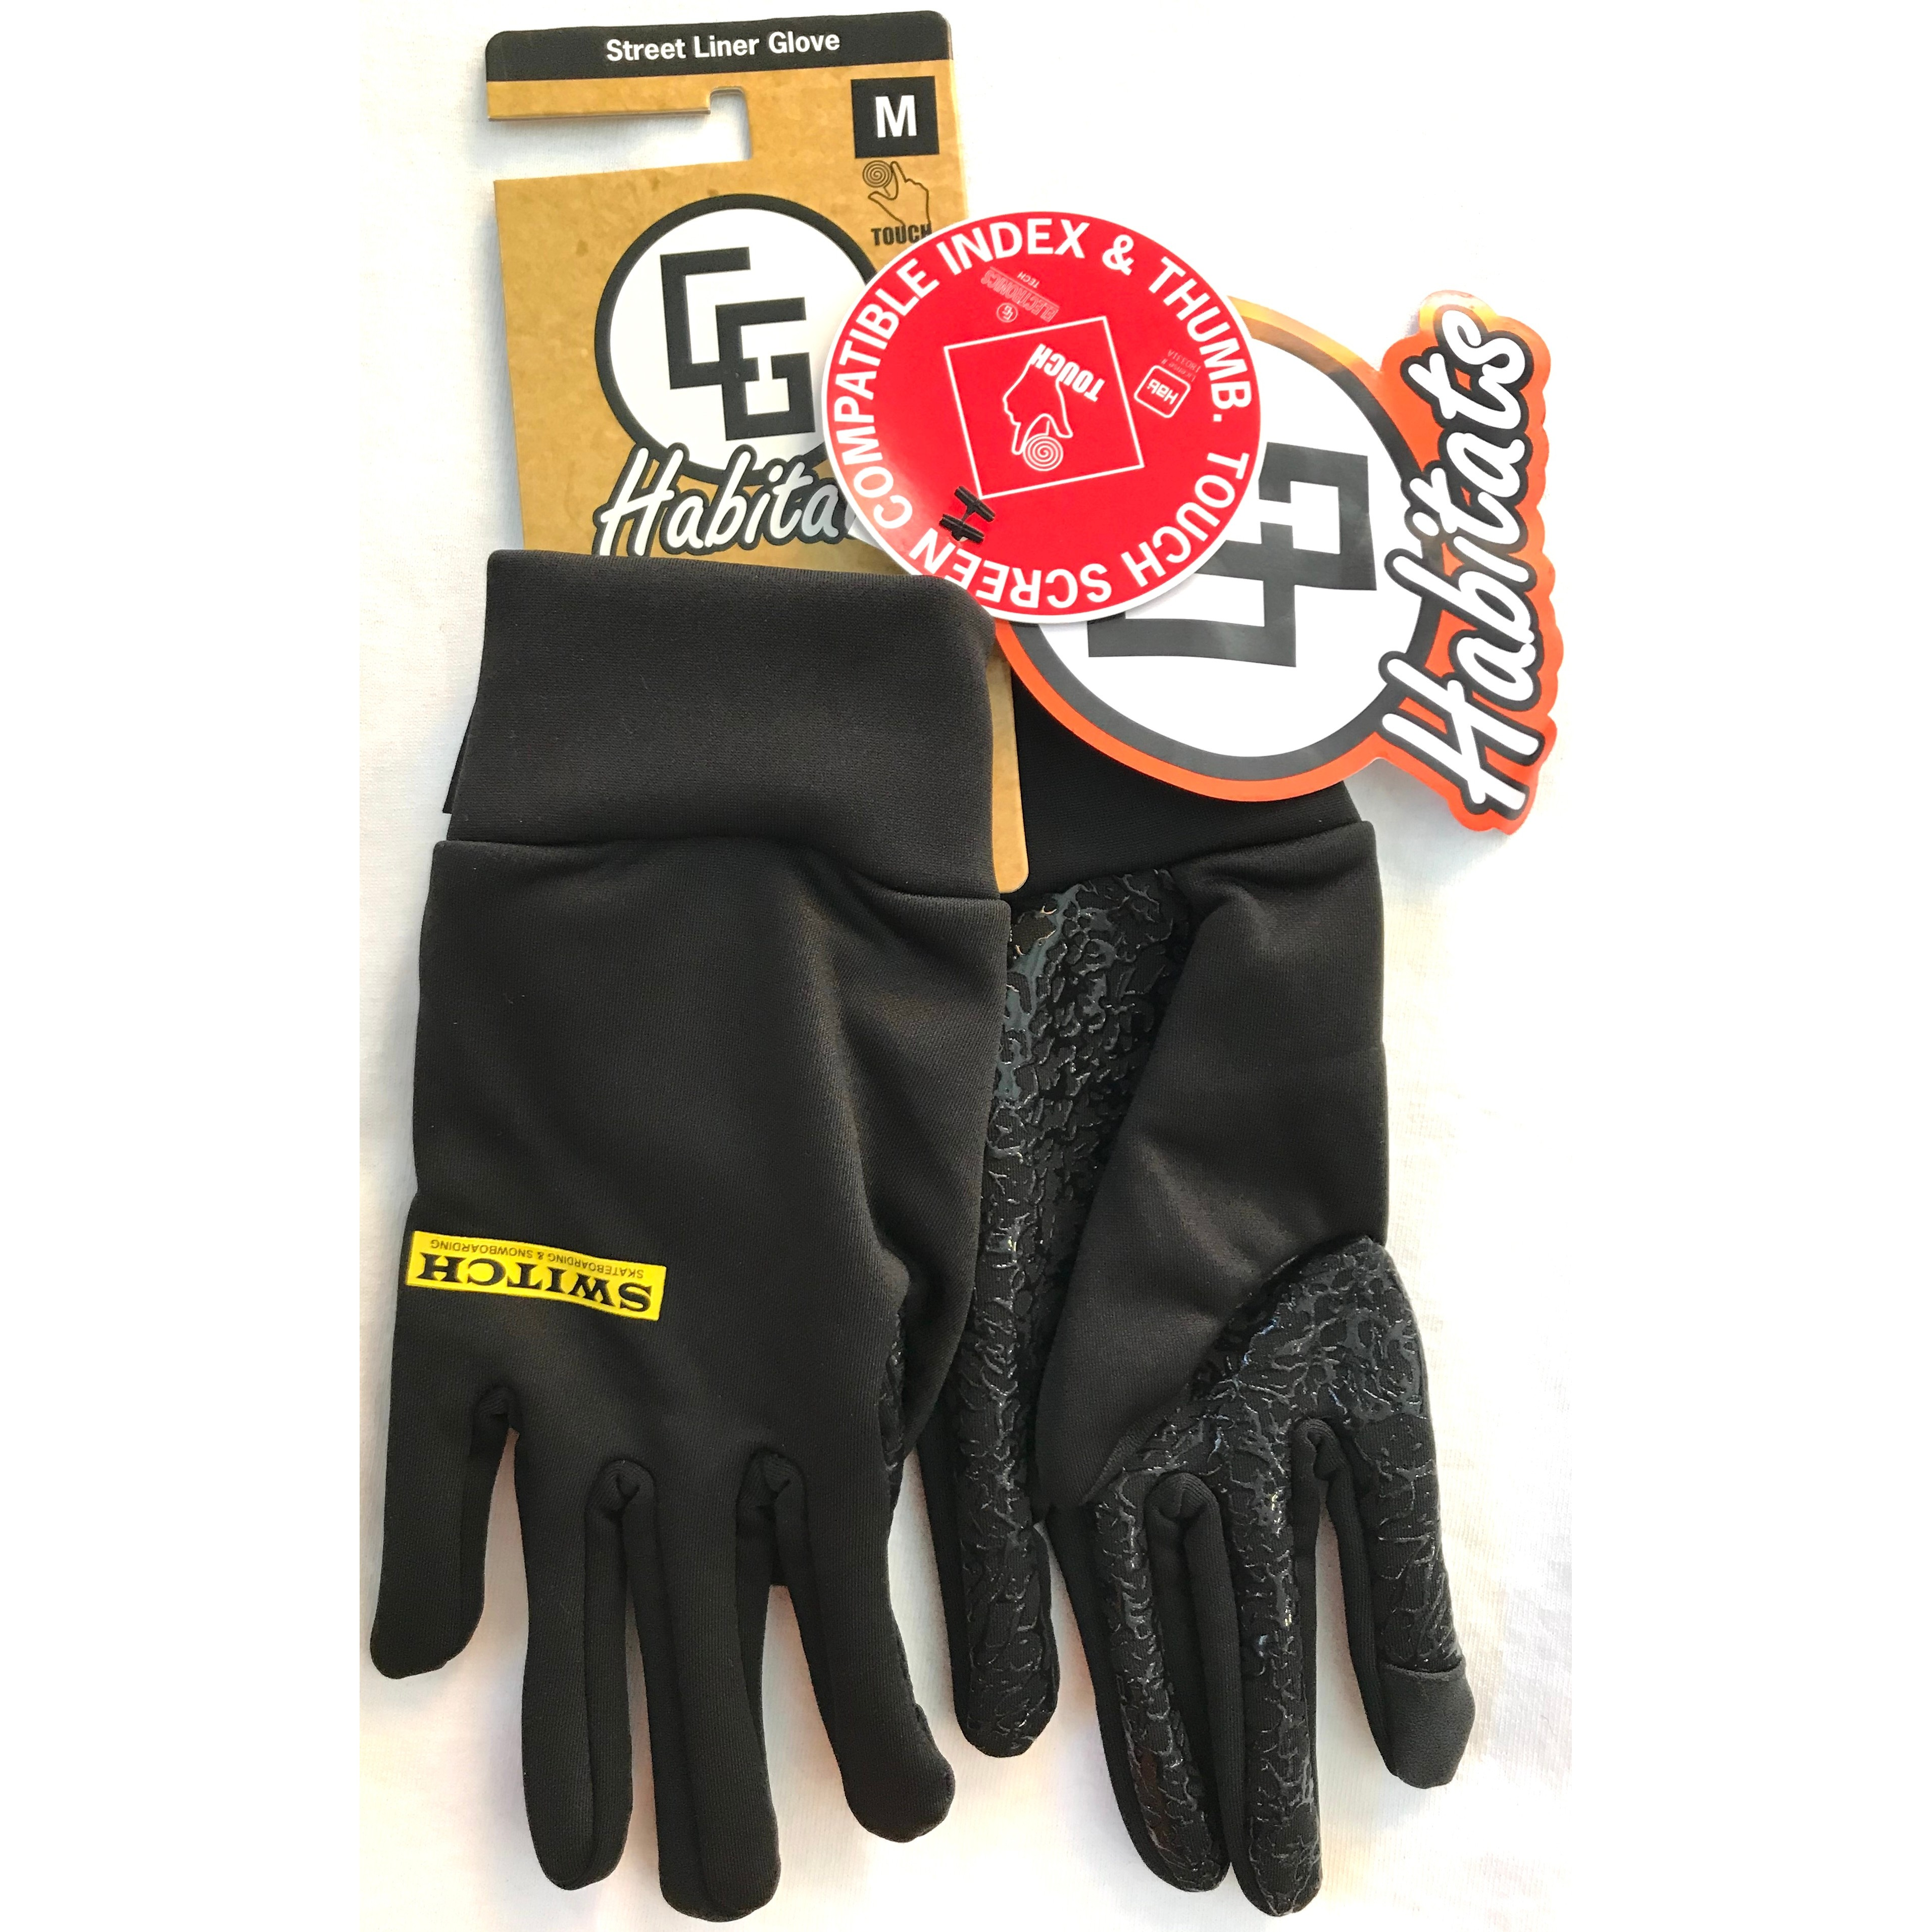 Switch X CandyGrind Street Liner Glove (Black)